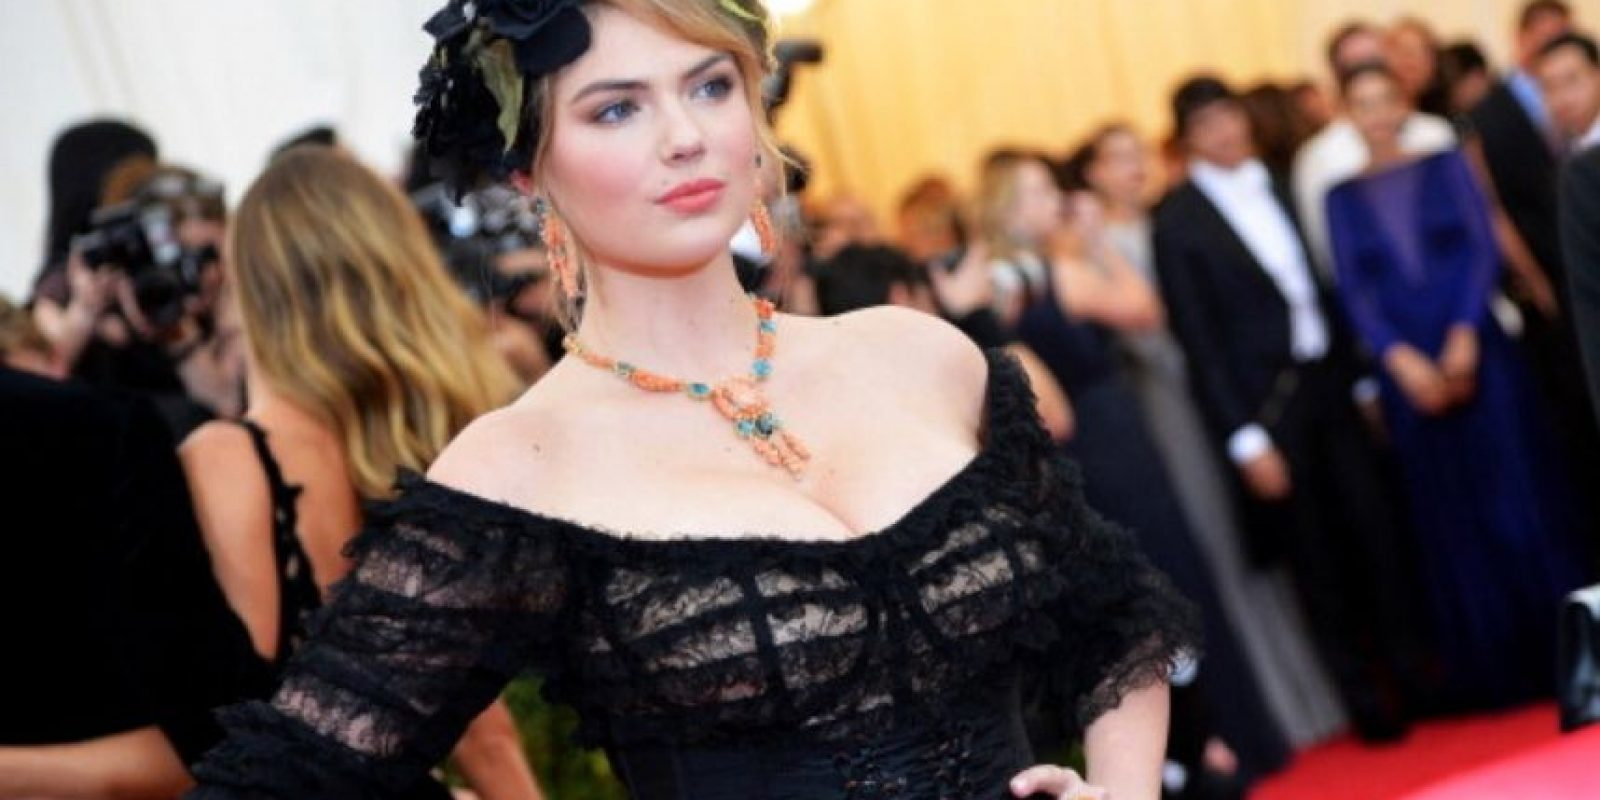 Kate Upton, en la gala del MET. Foto: Getty Images